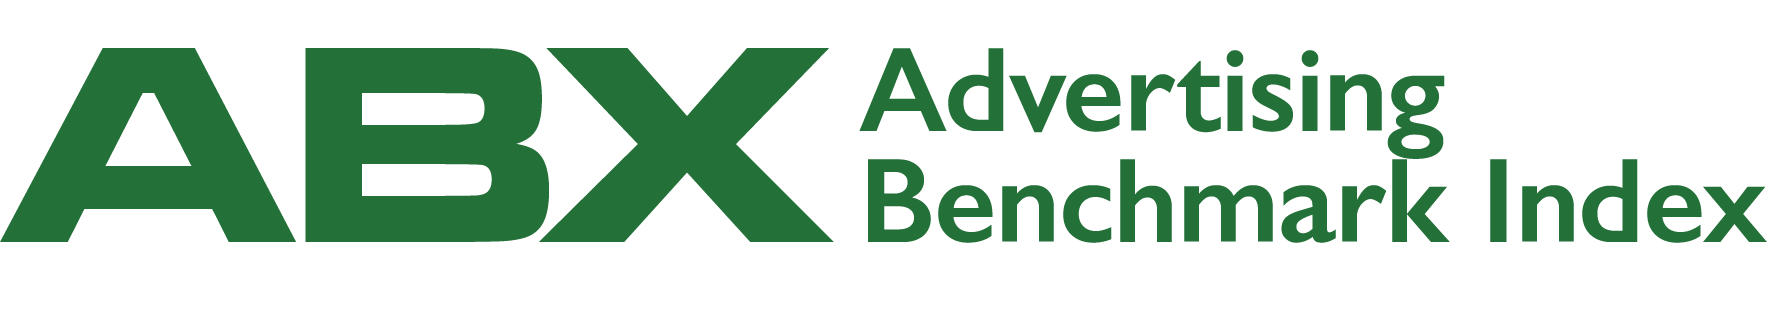 Logo-2016-ABX-Green.png